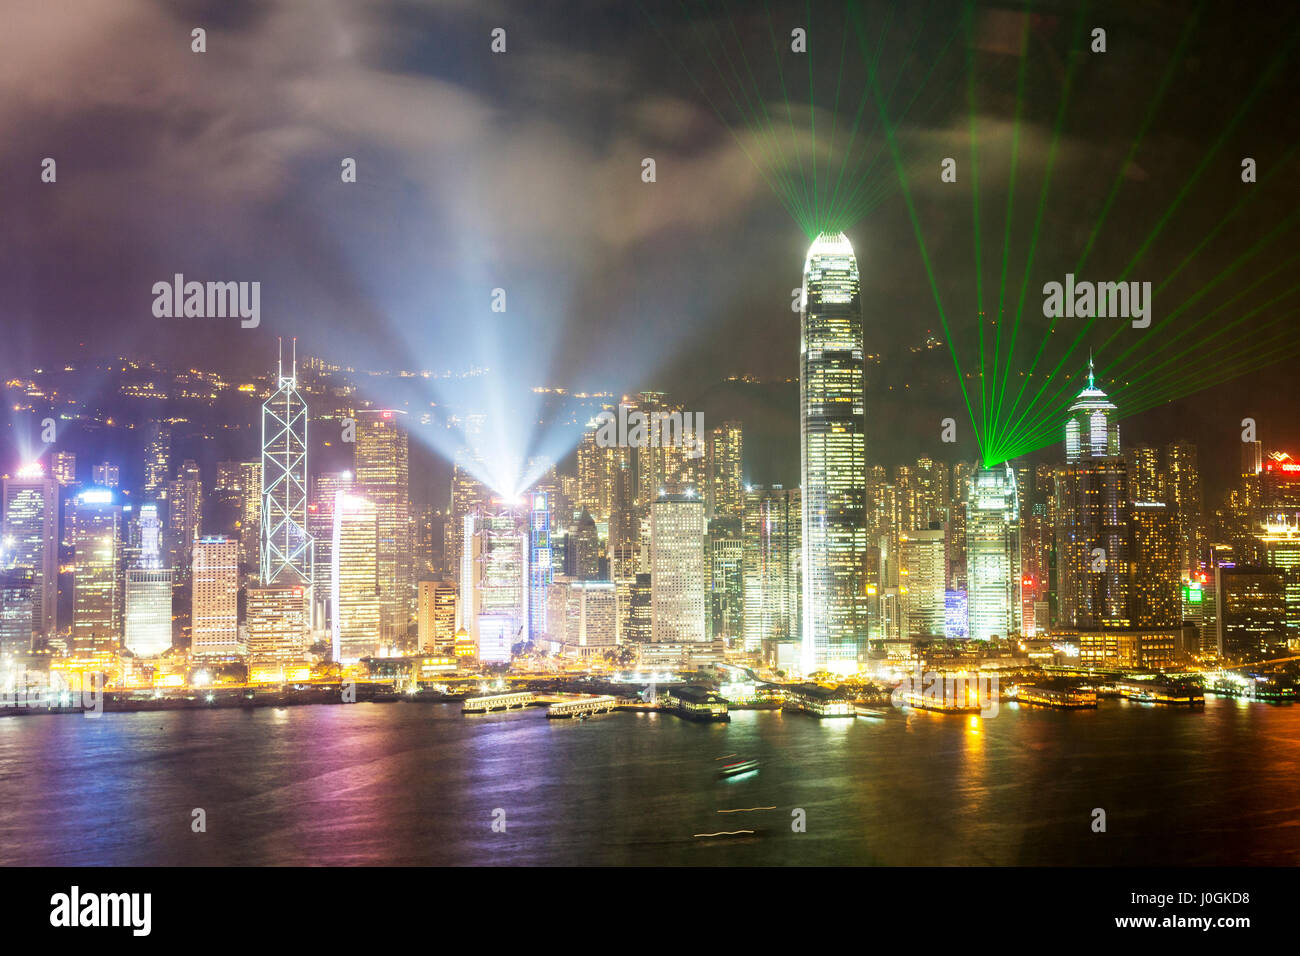 symphony of lights Hong Kong This spectacular multimedia show, combining lights, music and narration involves 19 - Stock Image